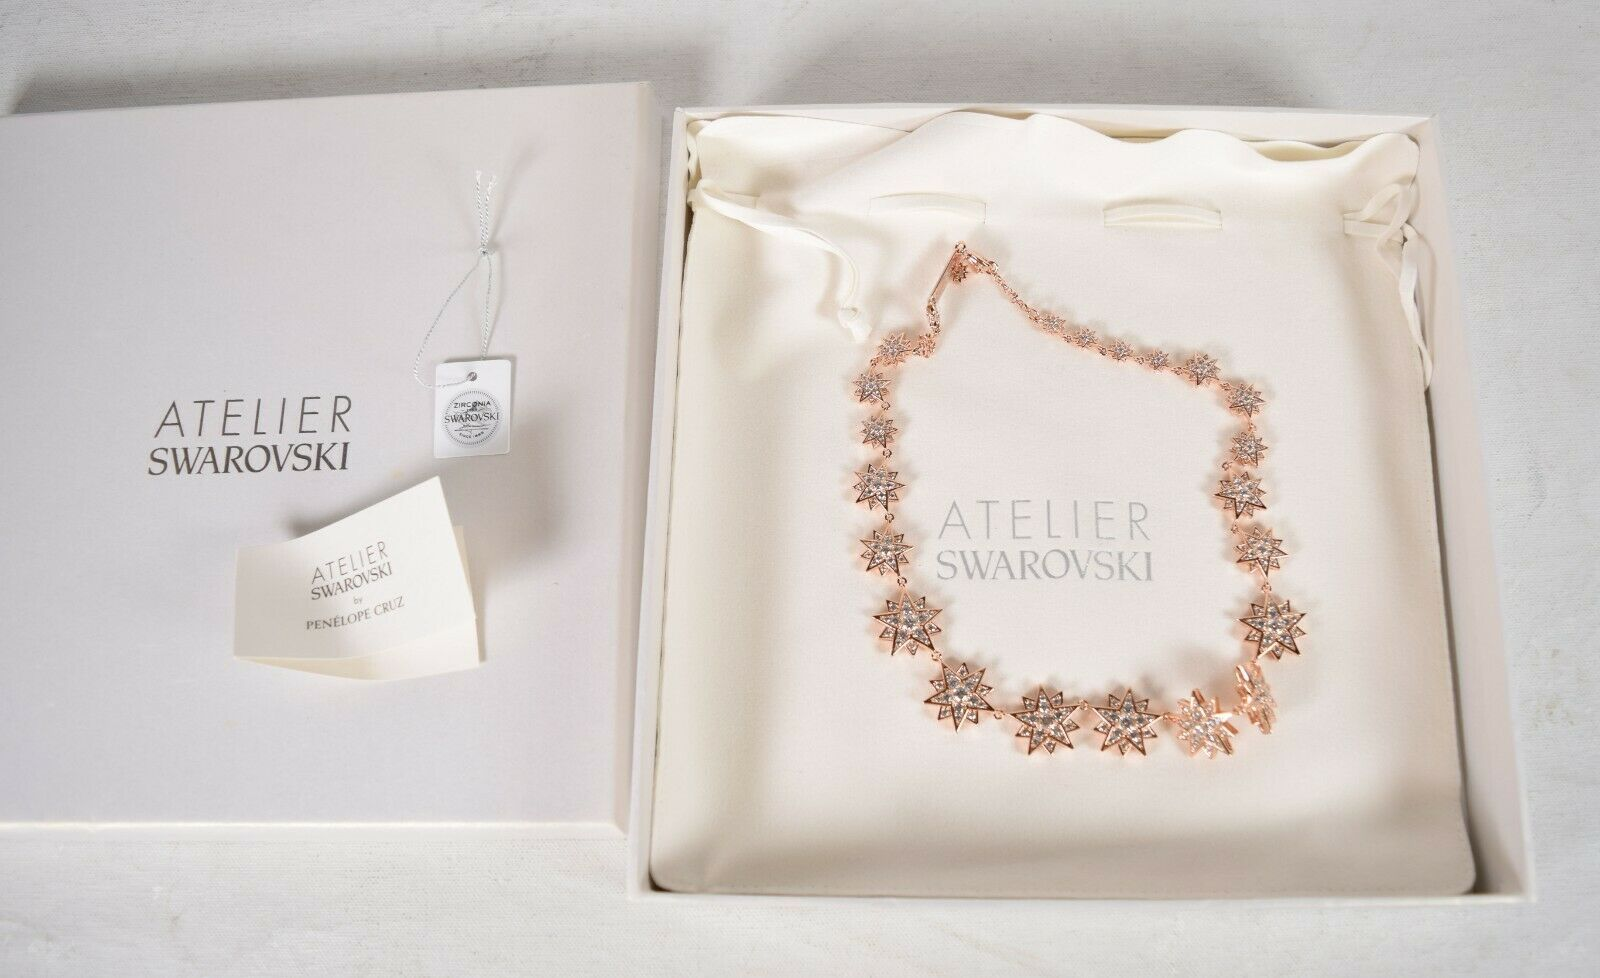 Primary image for Atelier Swarovski Penelope Cruz MoonSun Choker Five-point Star Necklace Rose